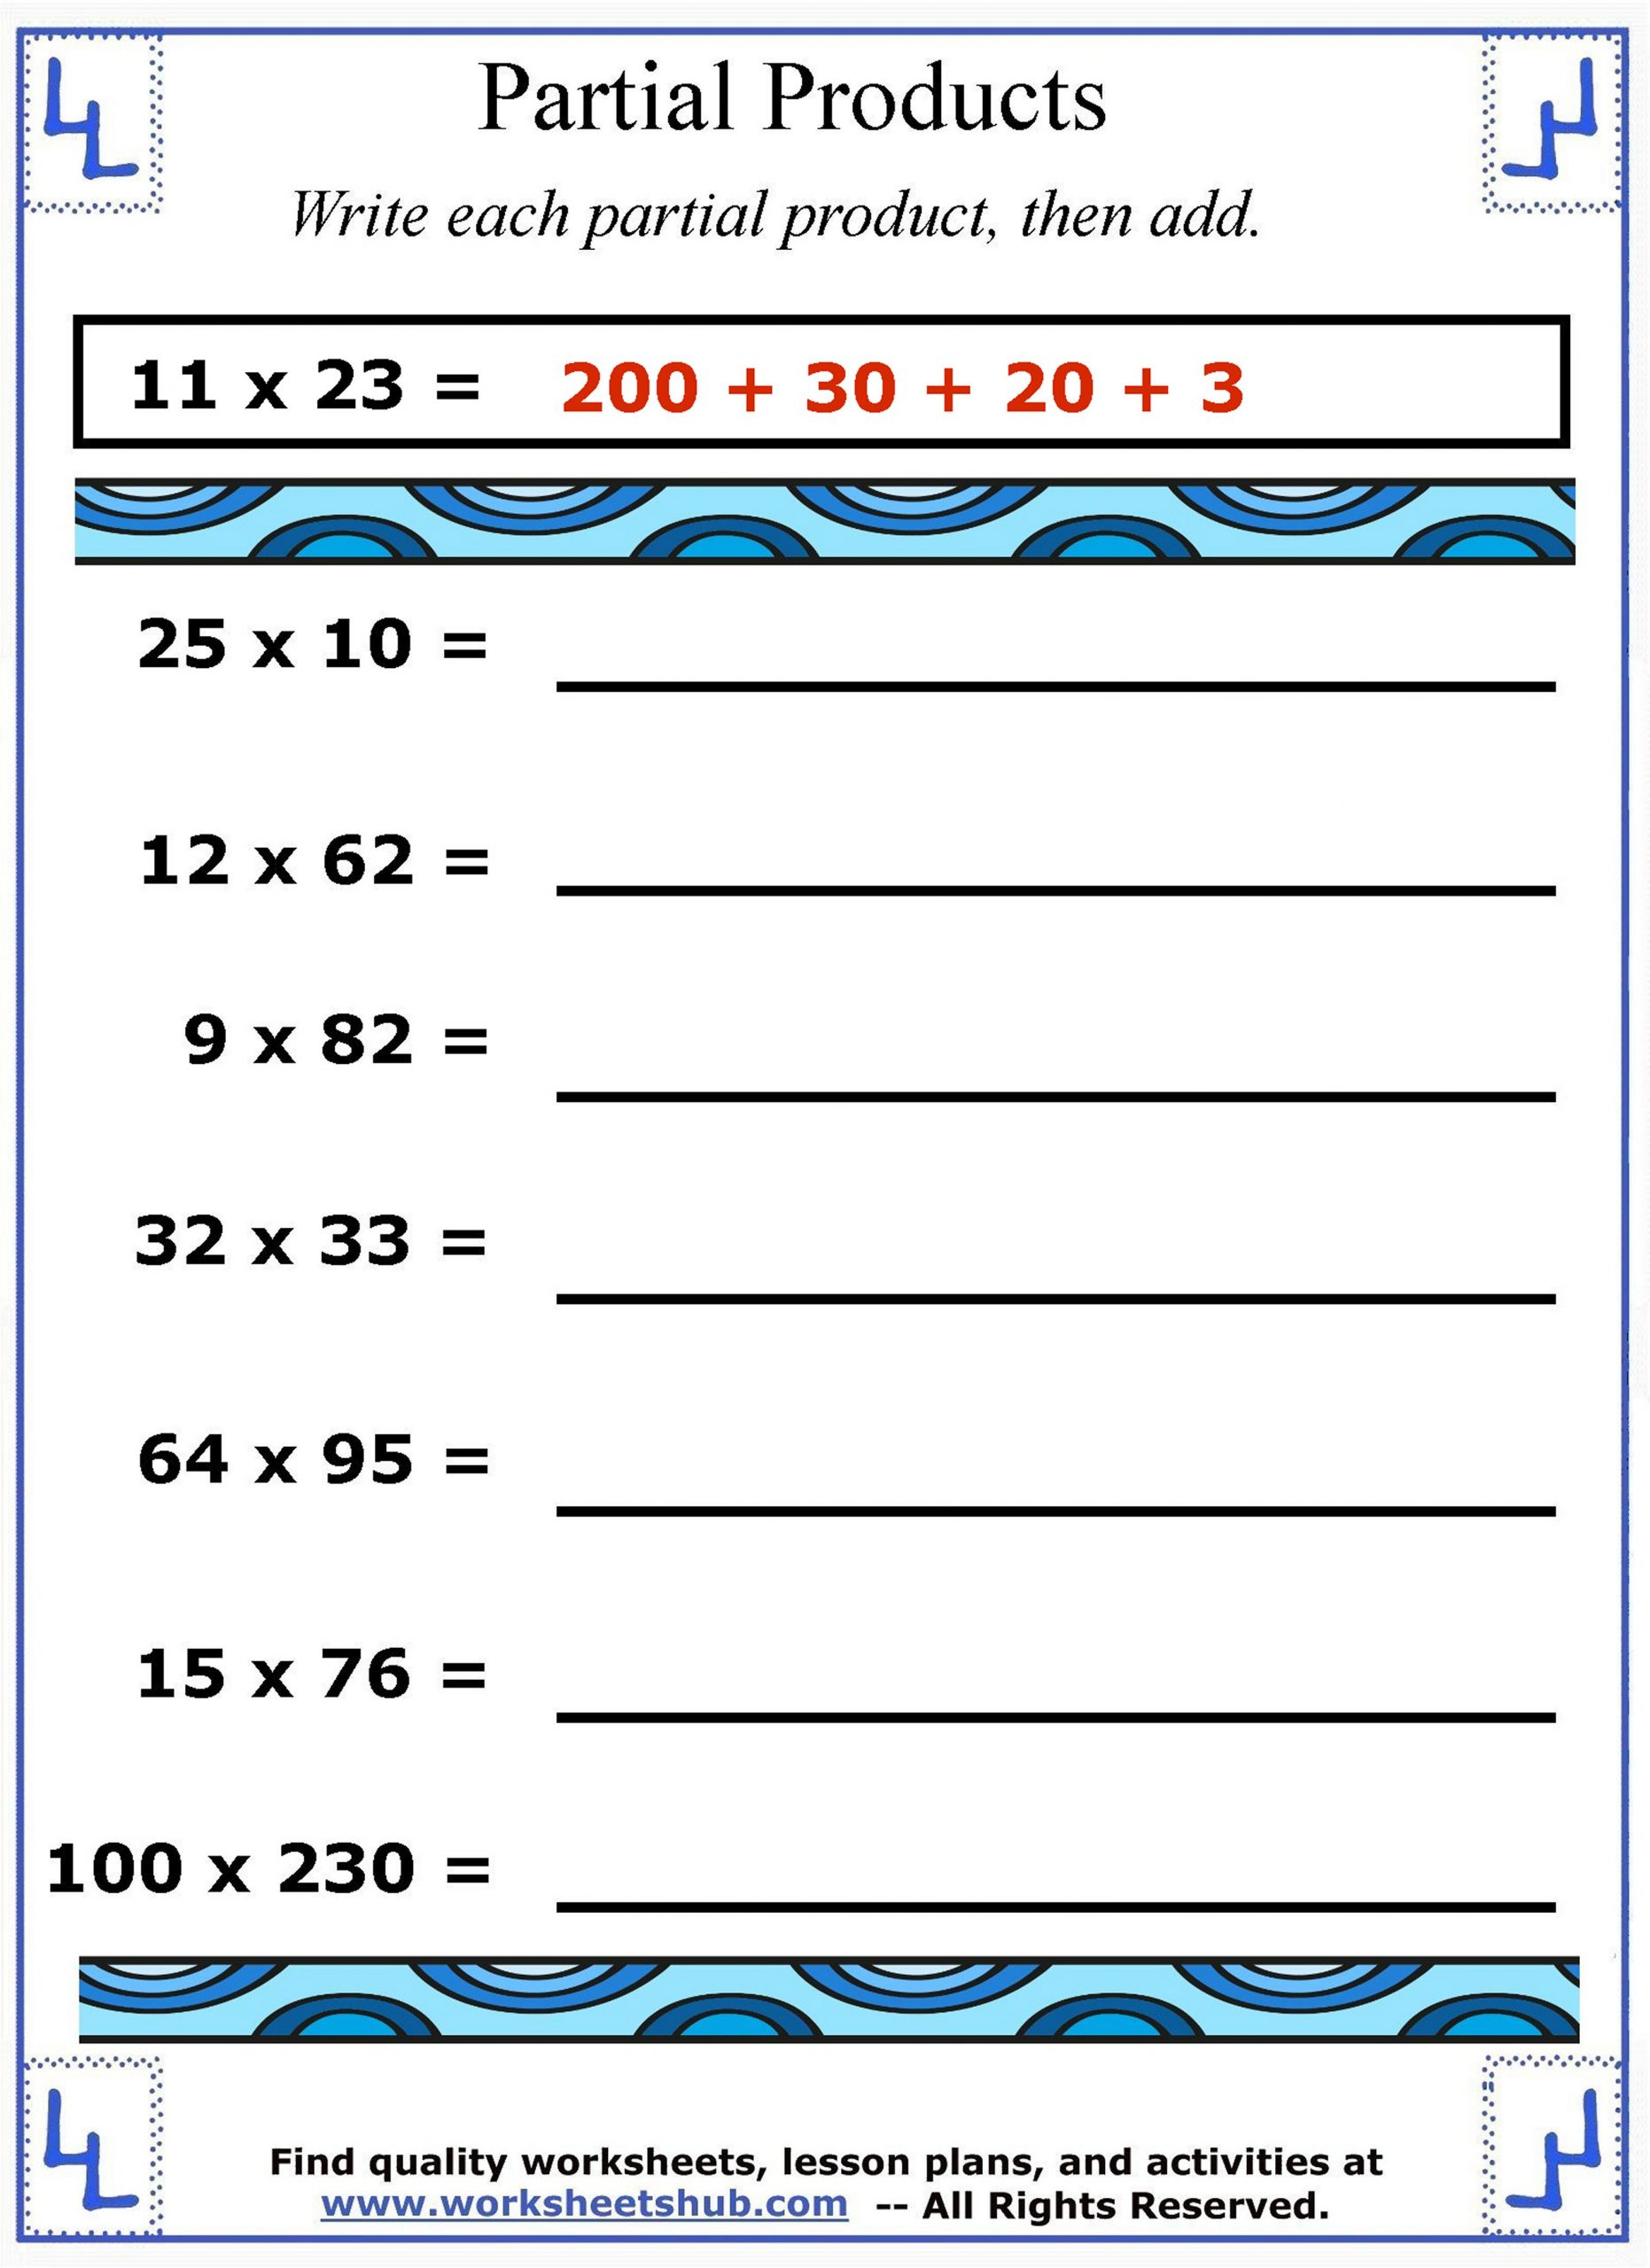 Multiplication Partial Products Worksheets Partial Products Multiplication Strategies